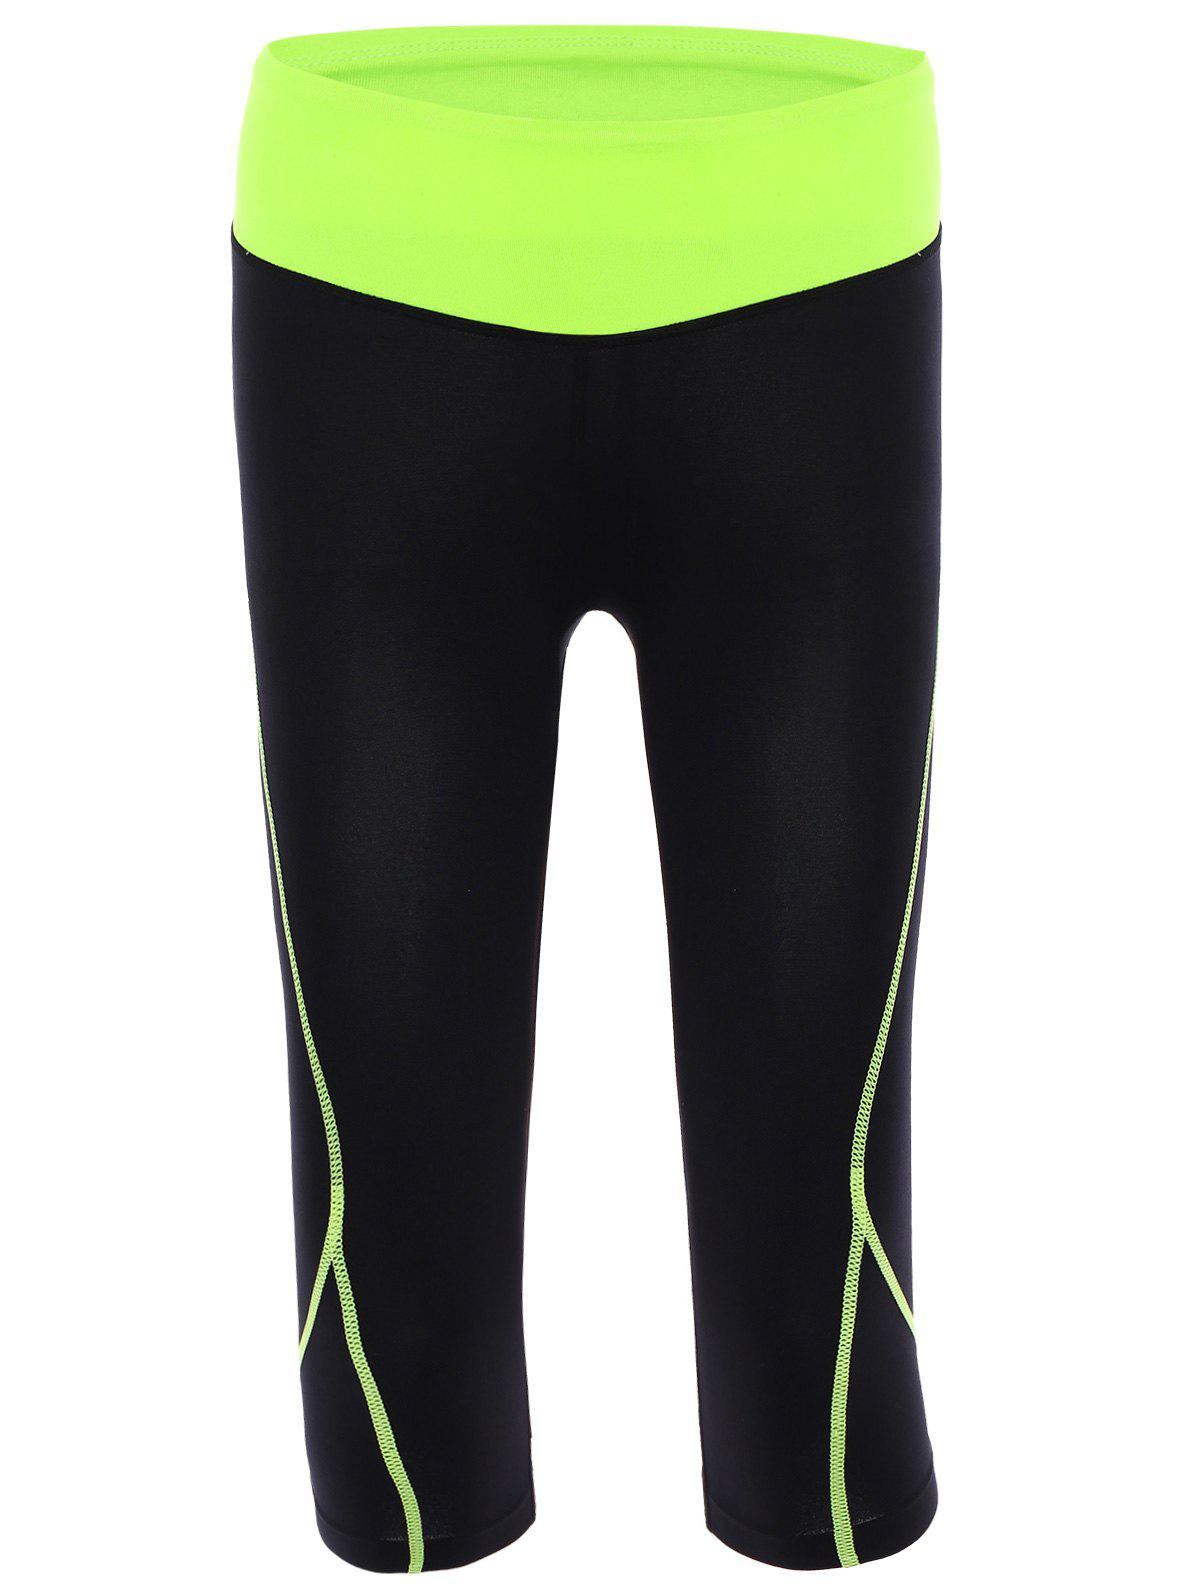 Active Elastic Waist Color Block Bodycon Women's Cropped Yoga Pants - NEON GREEN L